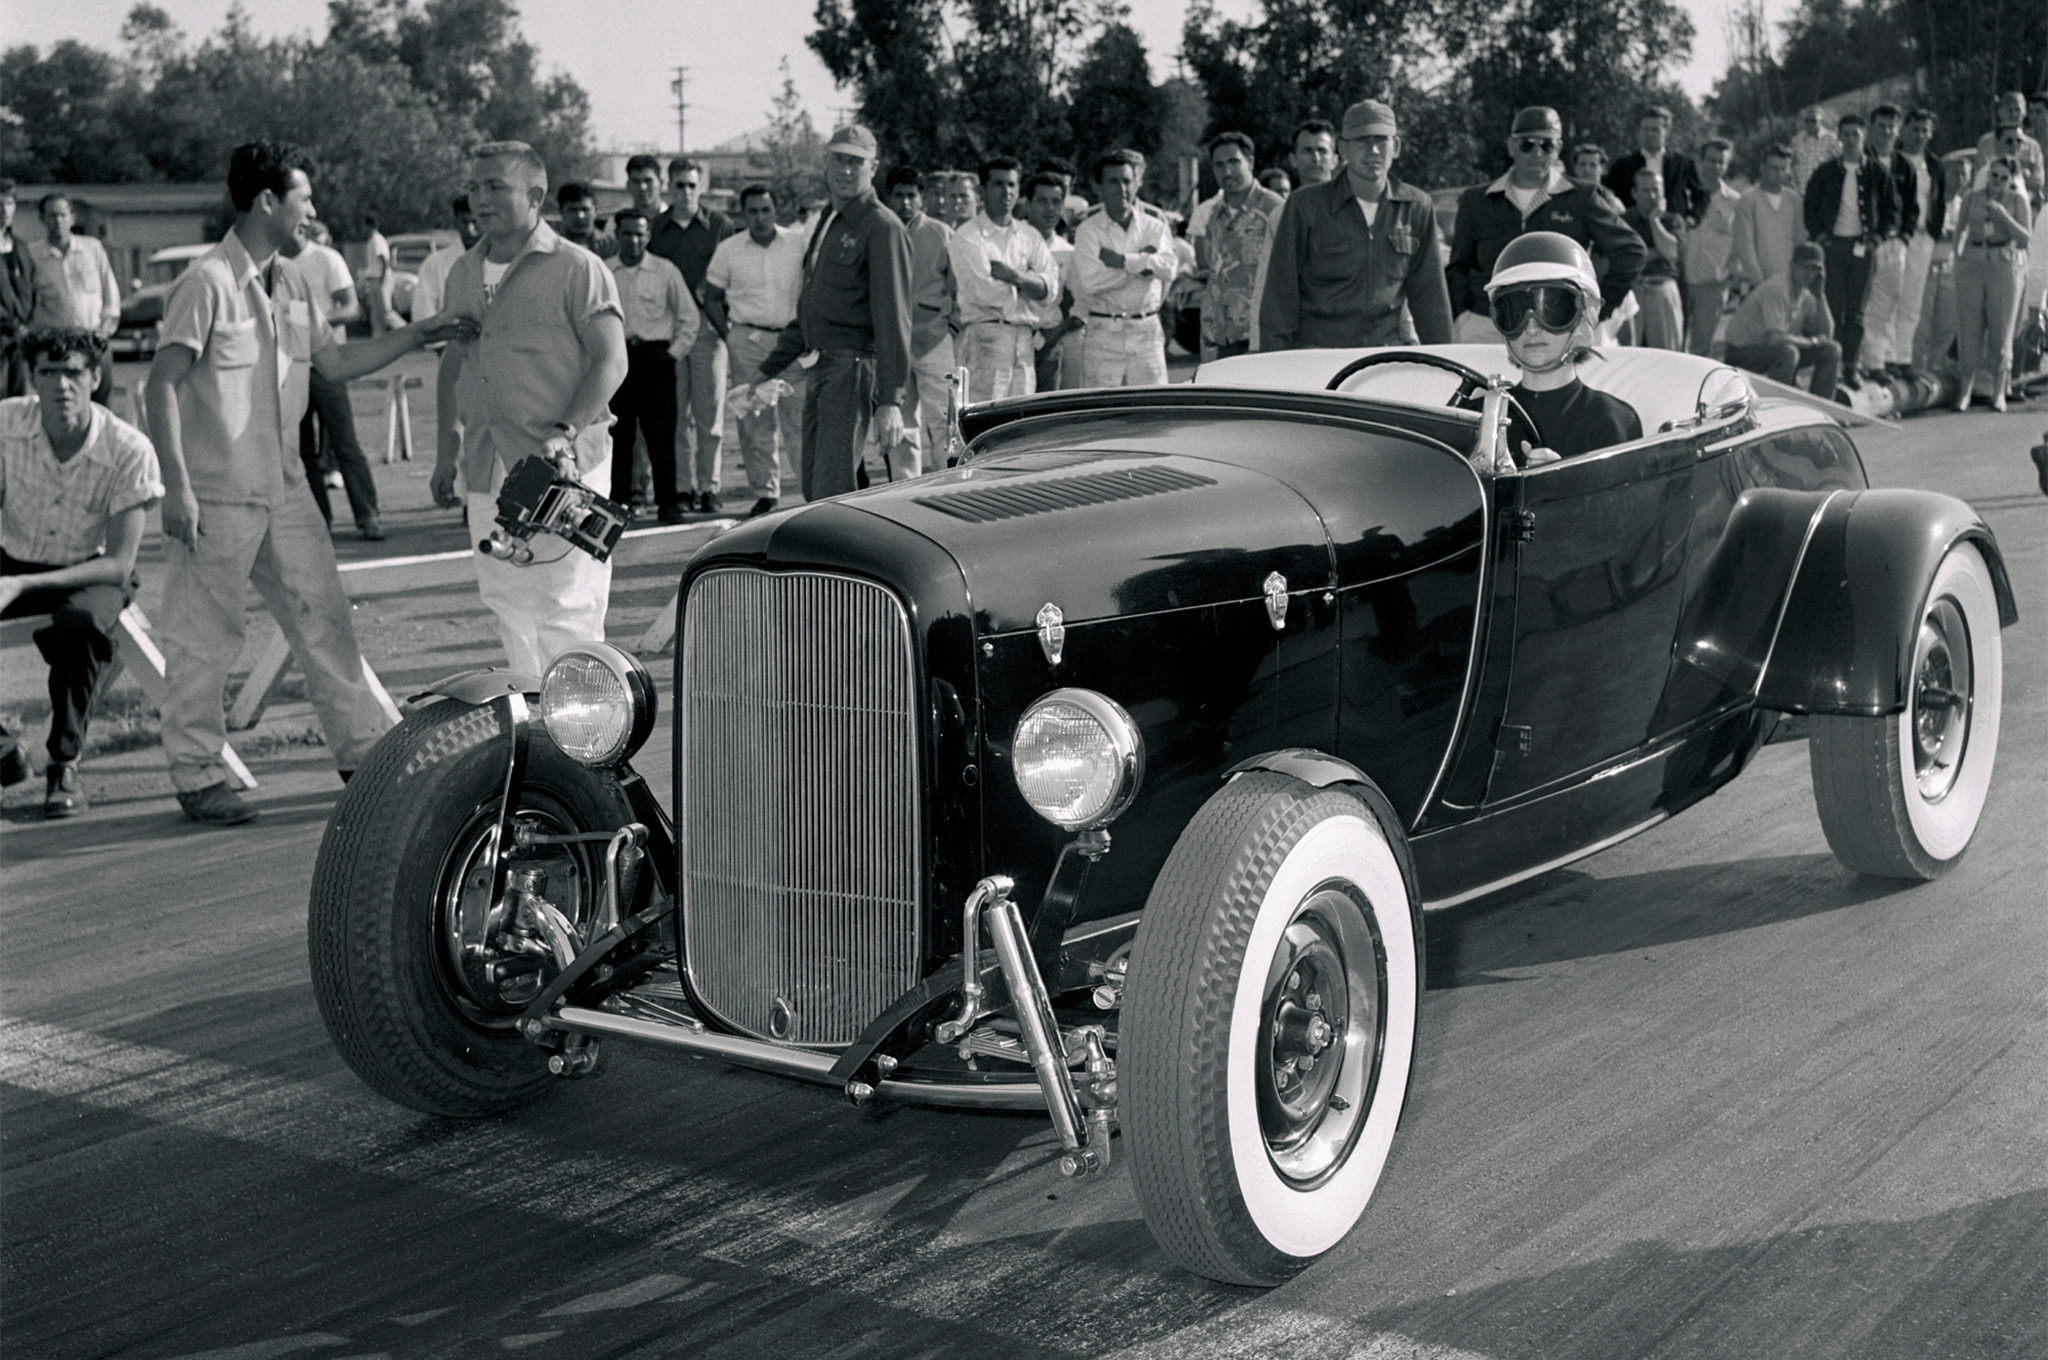 Another successful racer who's too often overlooked in listings of female pioneers is Helen Root, shown staging her and hubby Bart's A/V-8 at NHRA's Colton opener. Known for expertly shifting a Mercury gearbox at 6,000-plus rpm, Helen took the C/Street Roadster trophy here and nearly repeated at the Nationals, falling in the class final to national-record-holder Dale Ham, the future NHRA division director. Helen, Bart, and their two kids joined the sano roadster on HRM's July '55 cover.